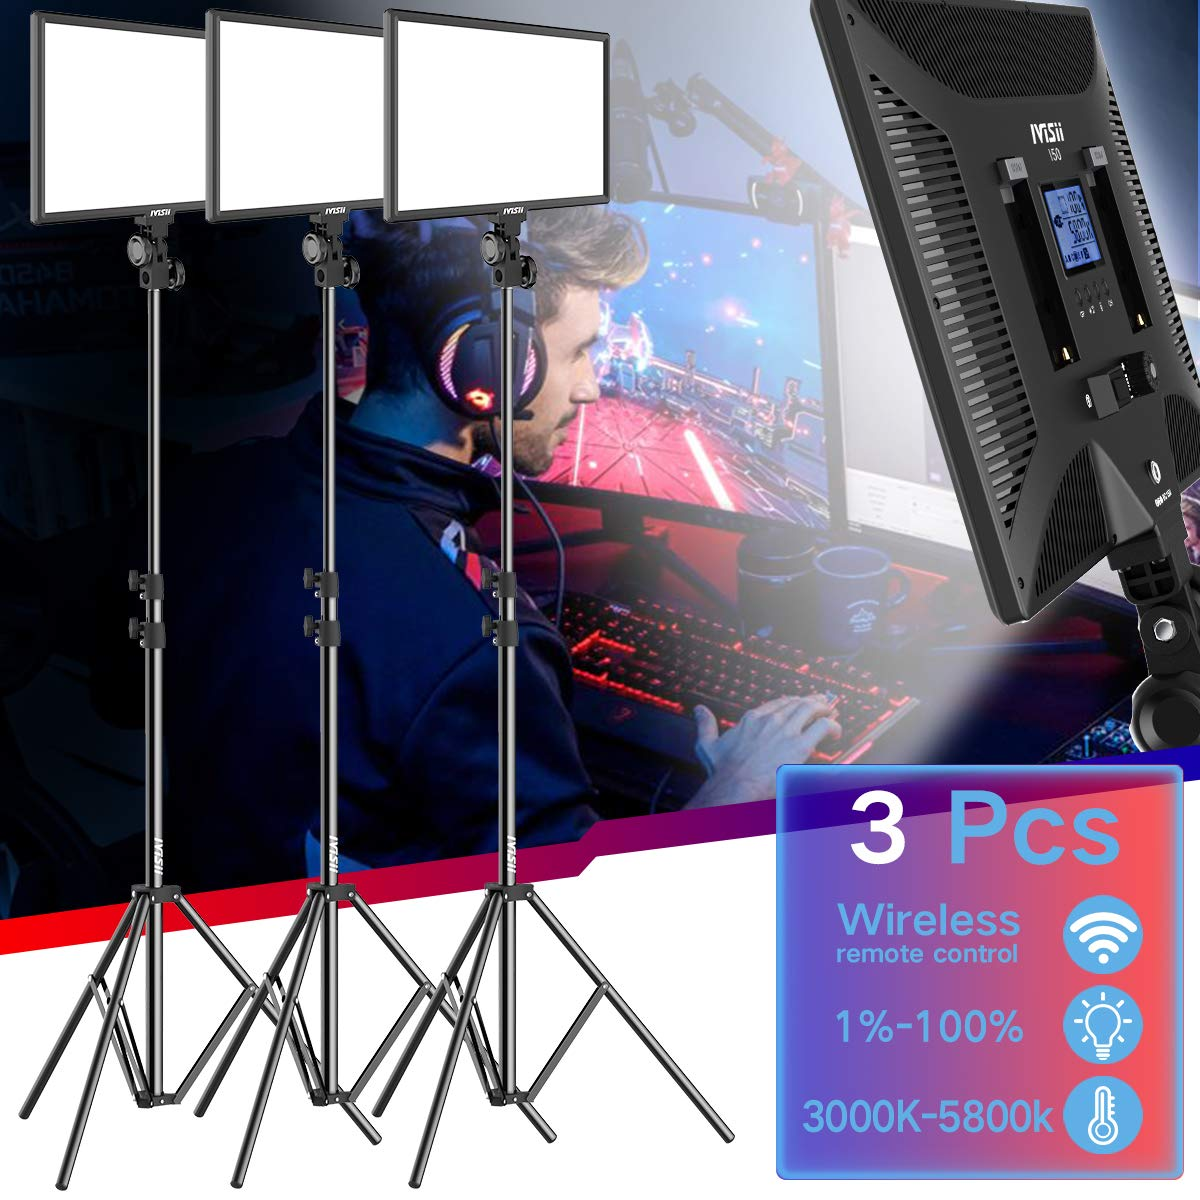 LED Video Light Kit - 15.4 Inch Bi-Color 3000k-5800k 45W Dimmable LED Panel Adjustable Light Stand Canon Nikon Pentax Camera Camcorder Studio Shooting (3-Pack) by IVISII (Image #1)